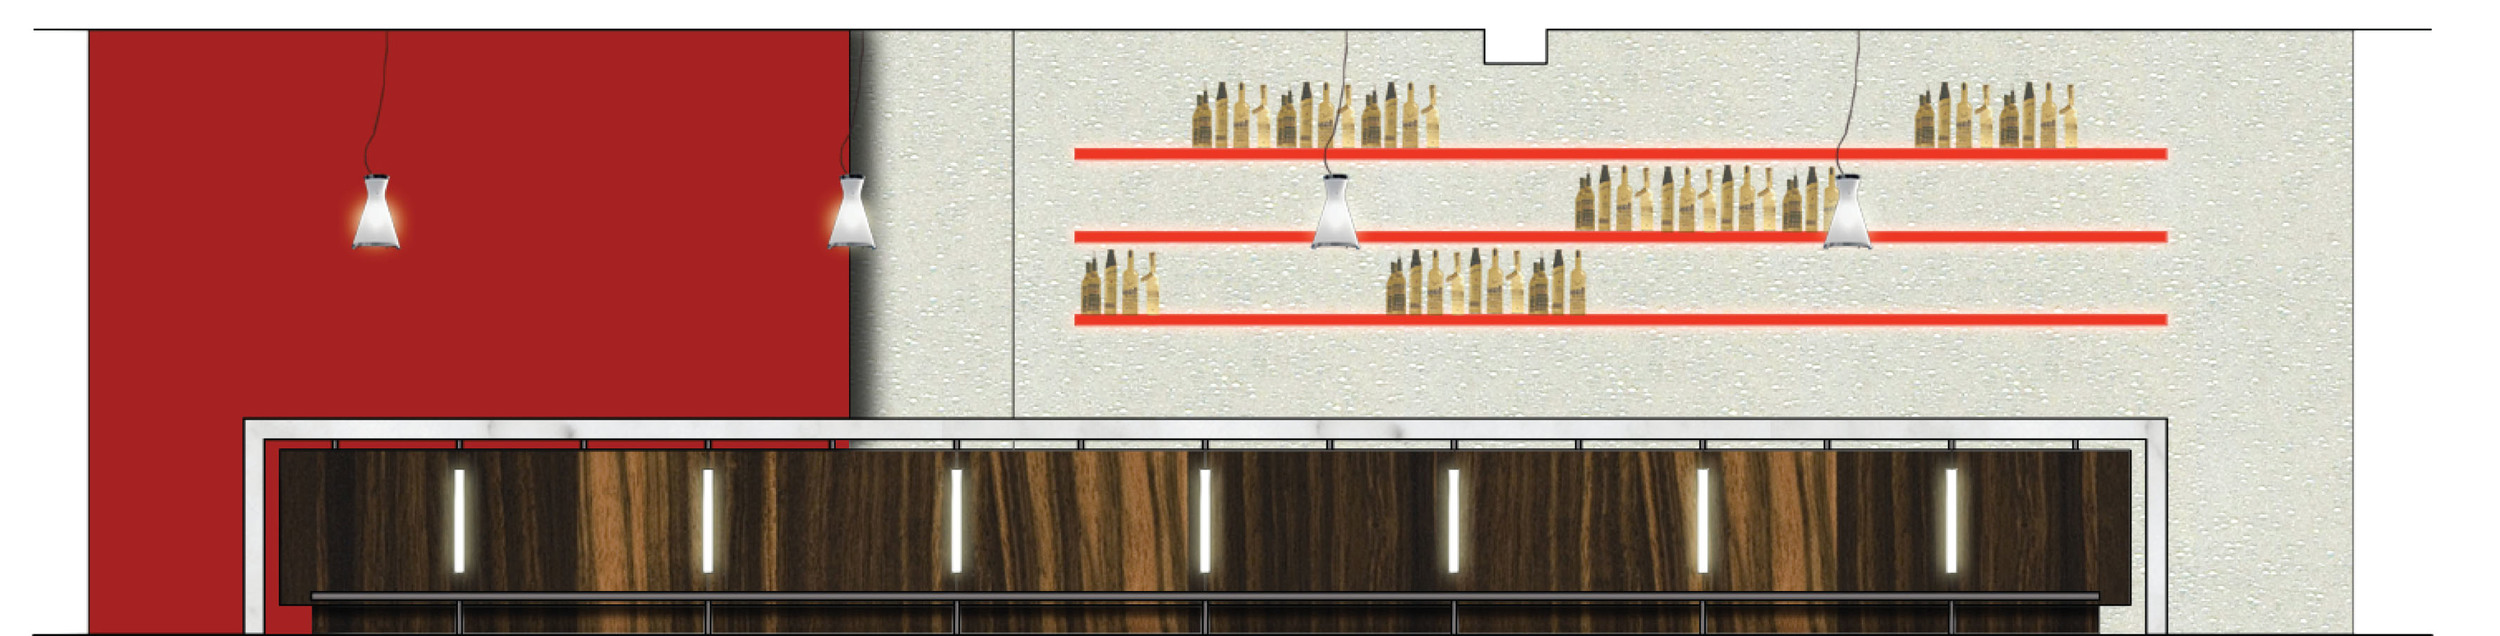 Bar Elevation